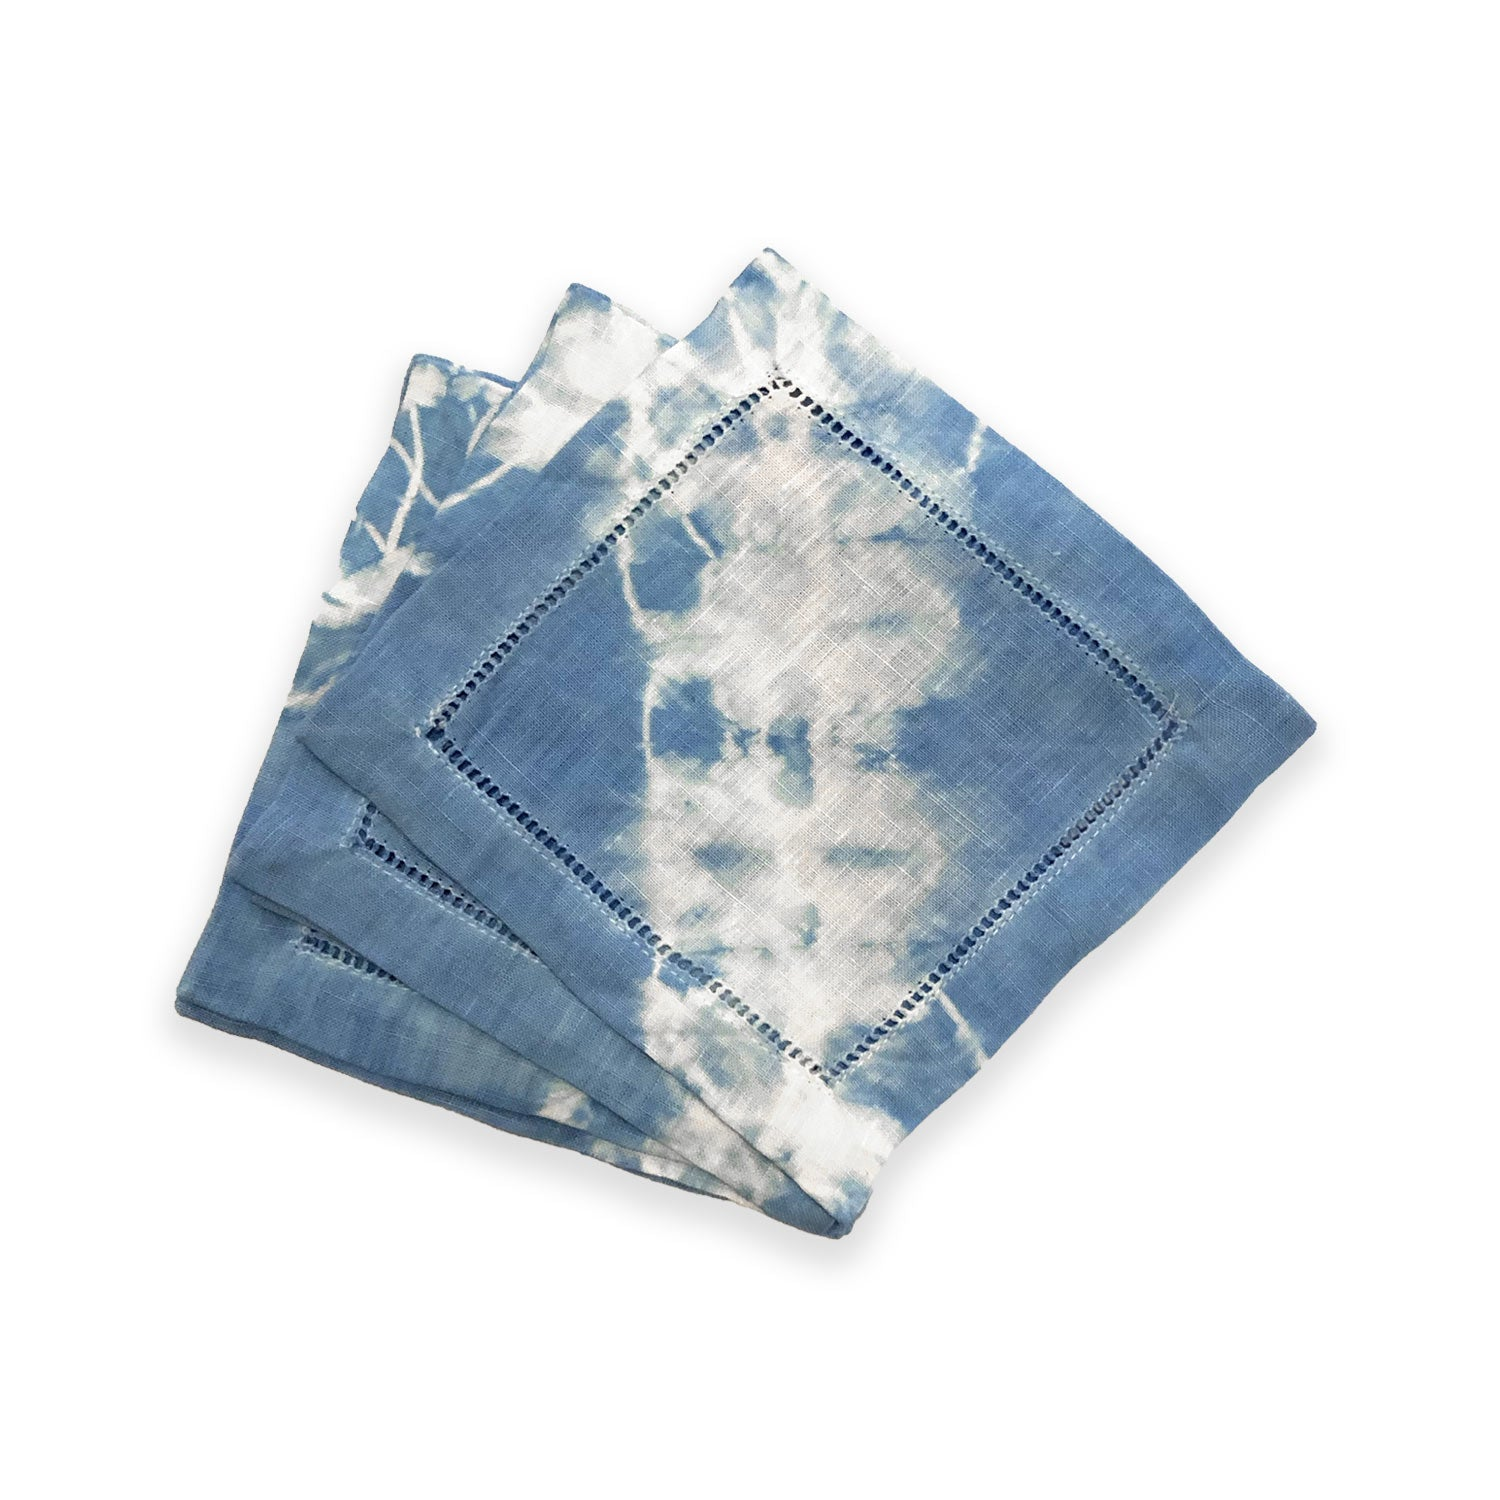 Hand-dyed Light Blue Shibori Cocktail Napkins (Set of 6)